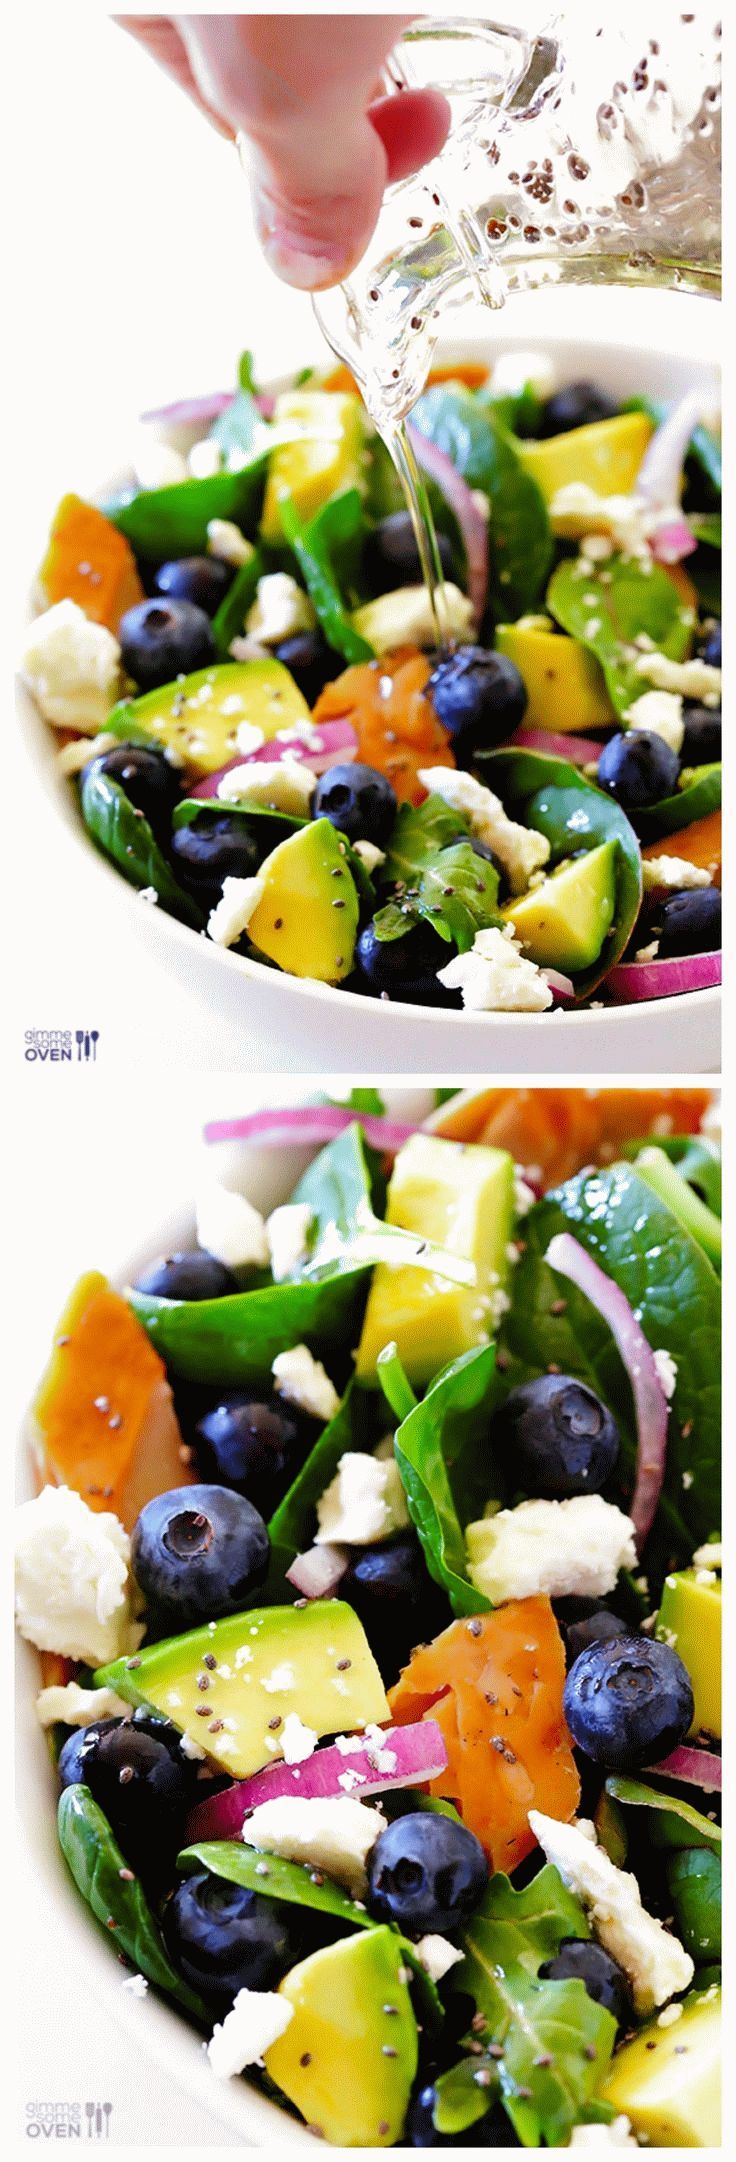 Spinach Salad with Salmon, Avocado and Blueberries